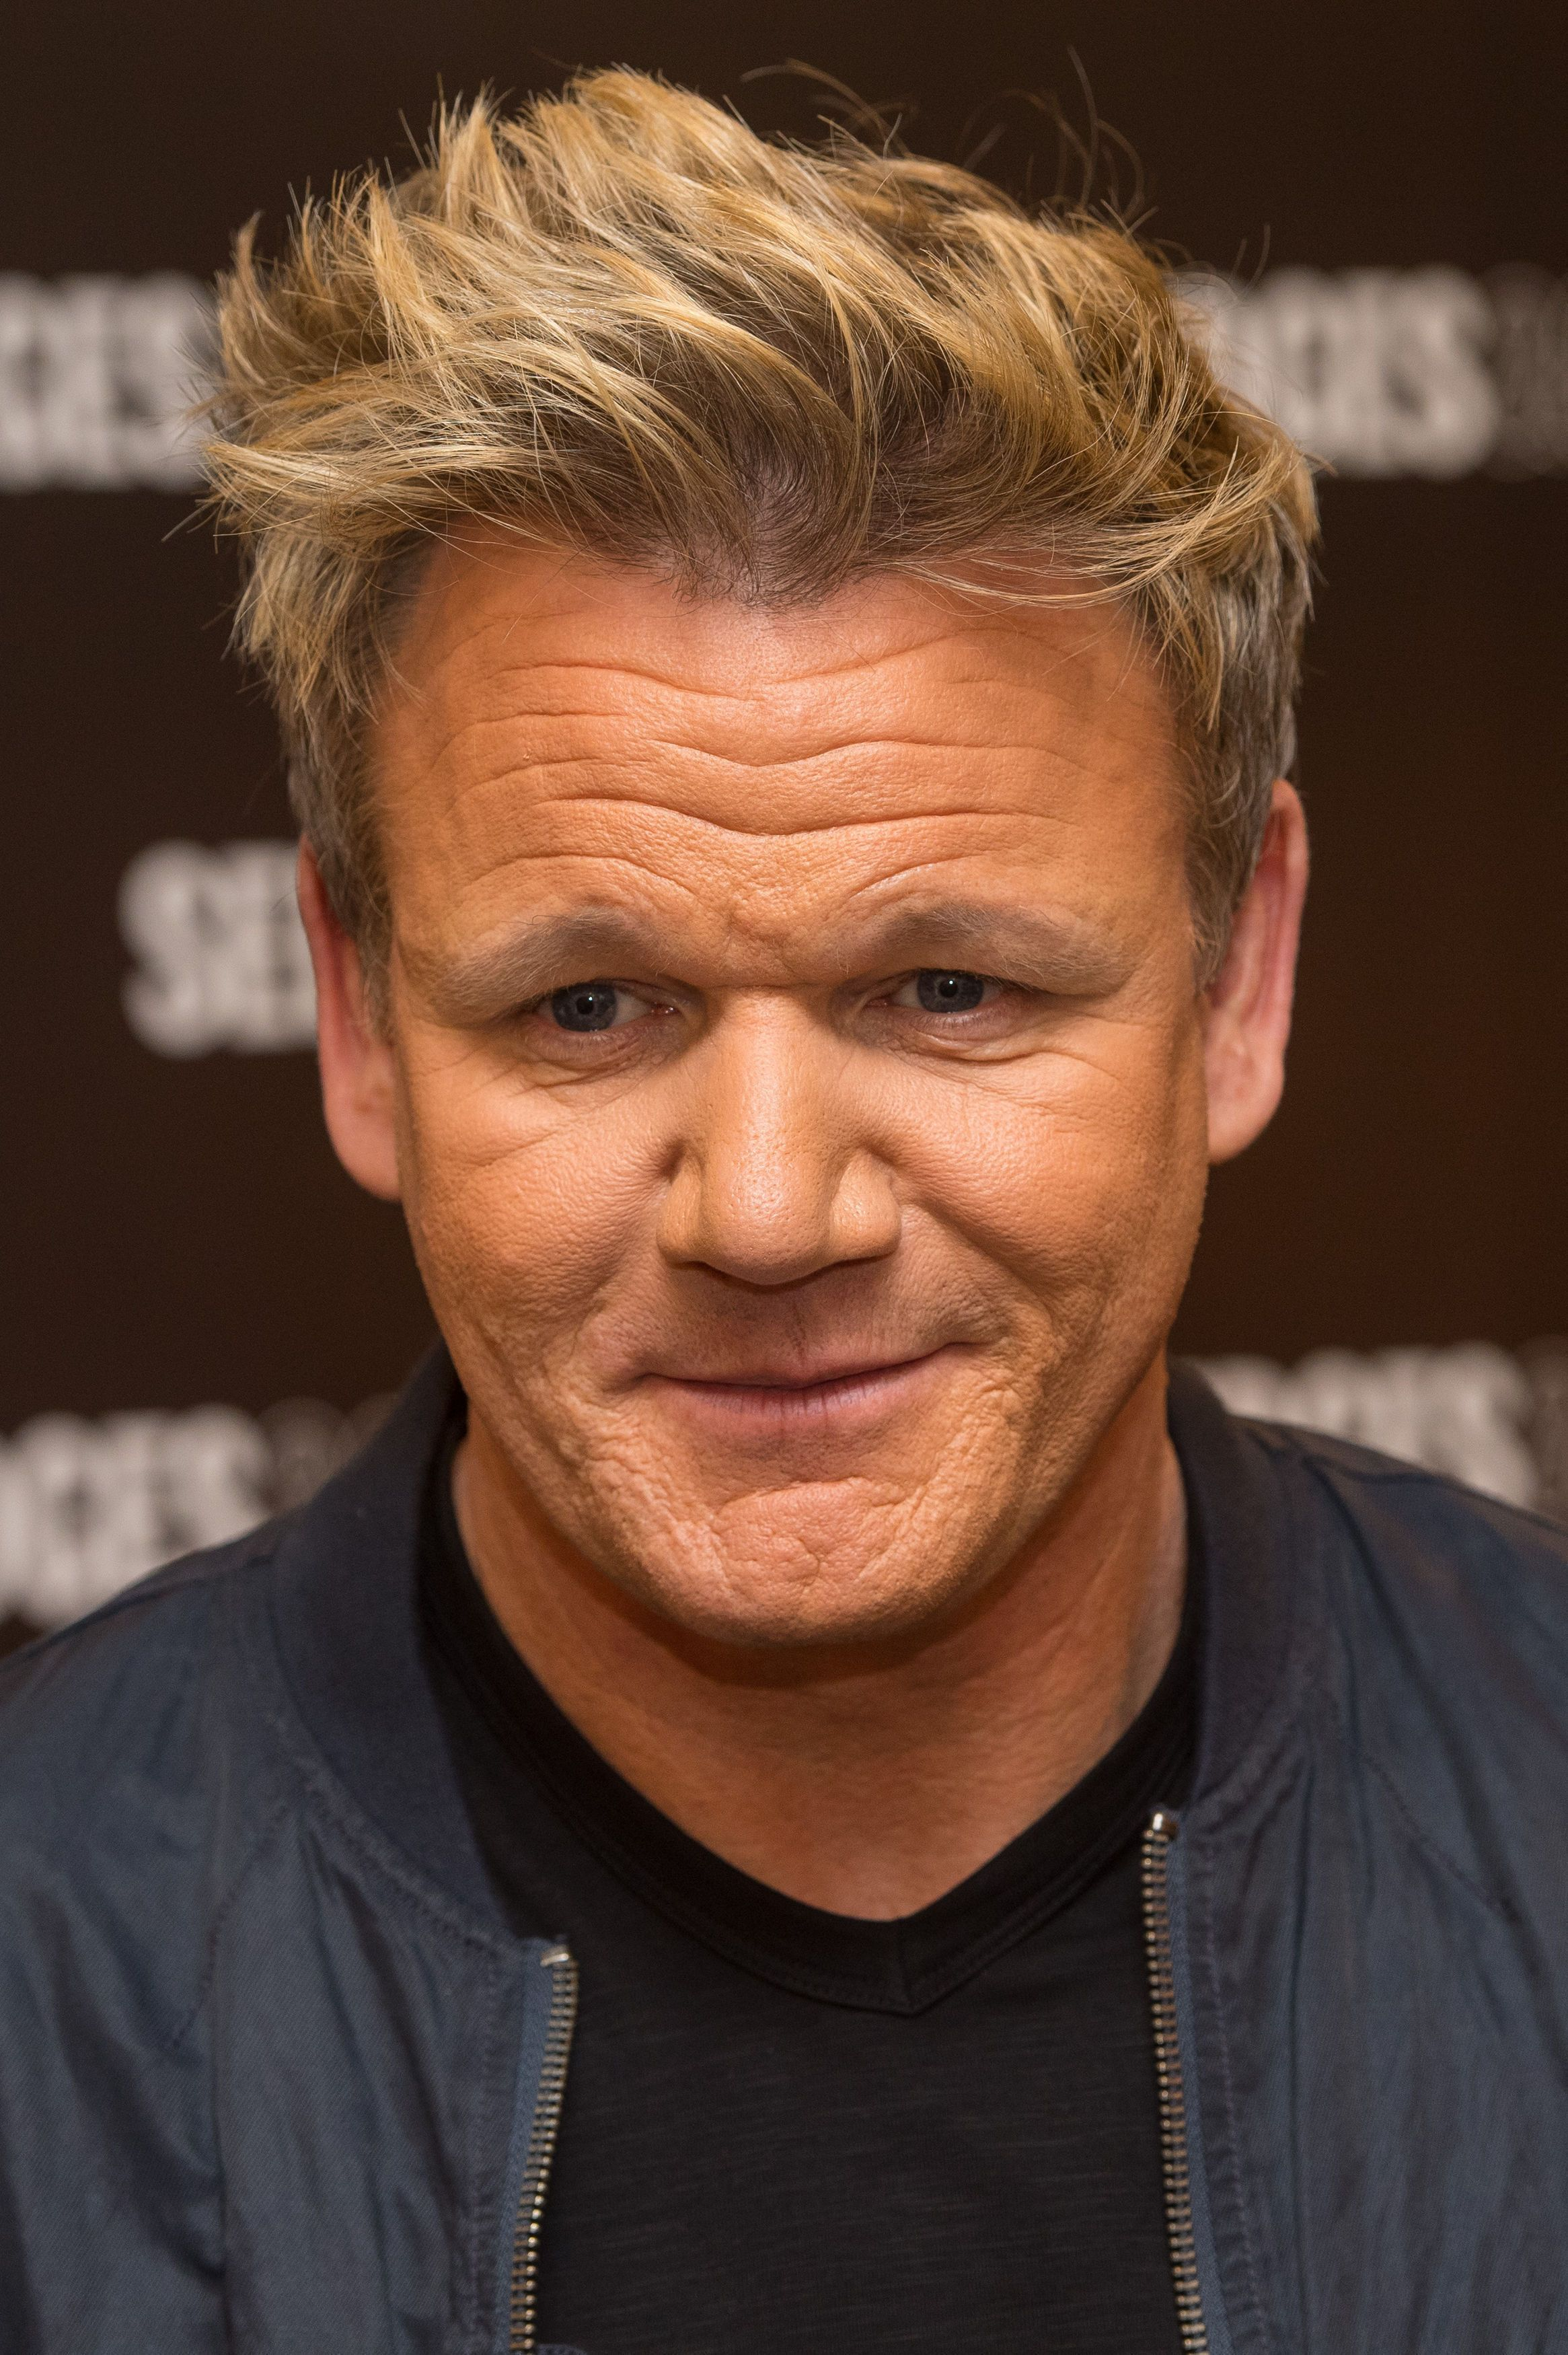 Gordon Ramsay Reveals The One Thing He Absolutely Refuses To